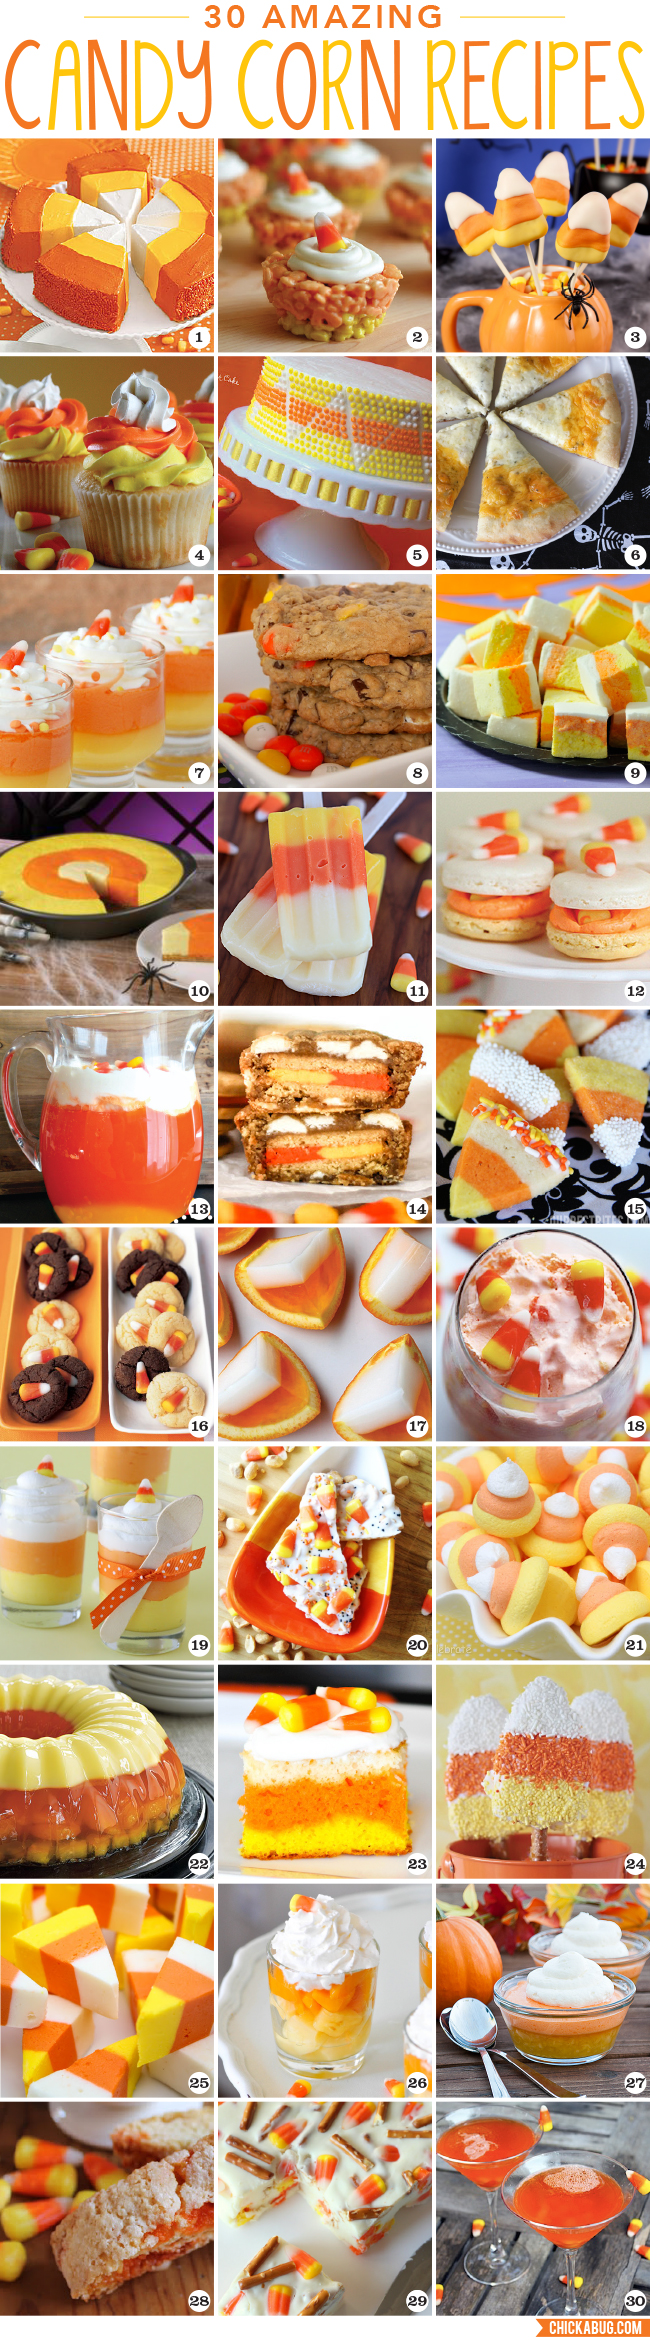 30 amazing candy corn recipes for Halloween!